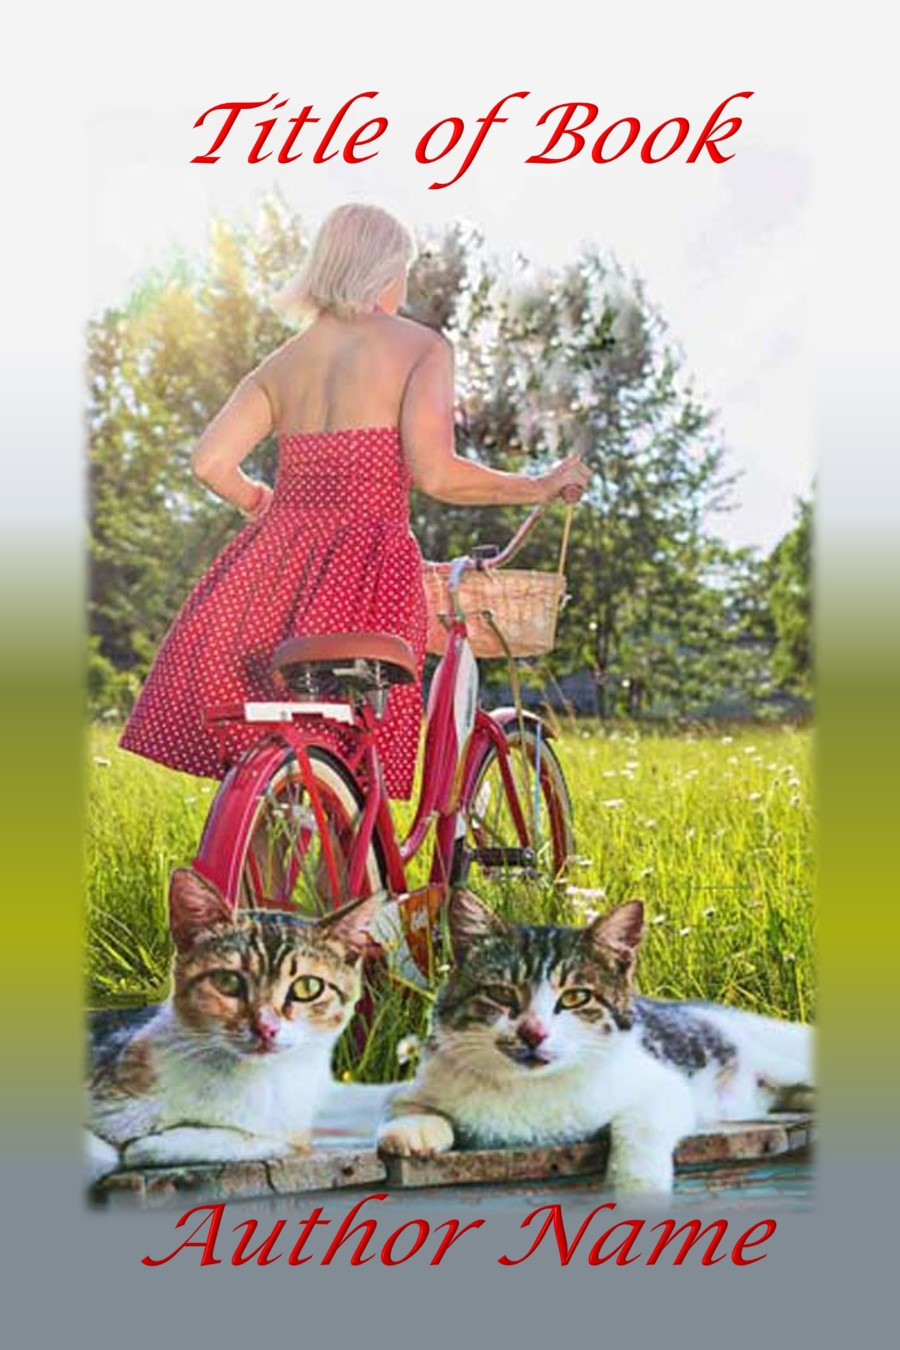 Group I. Woman, Vintage Bicycle, Cats